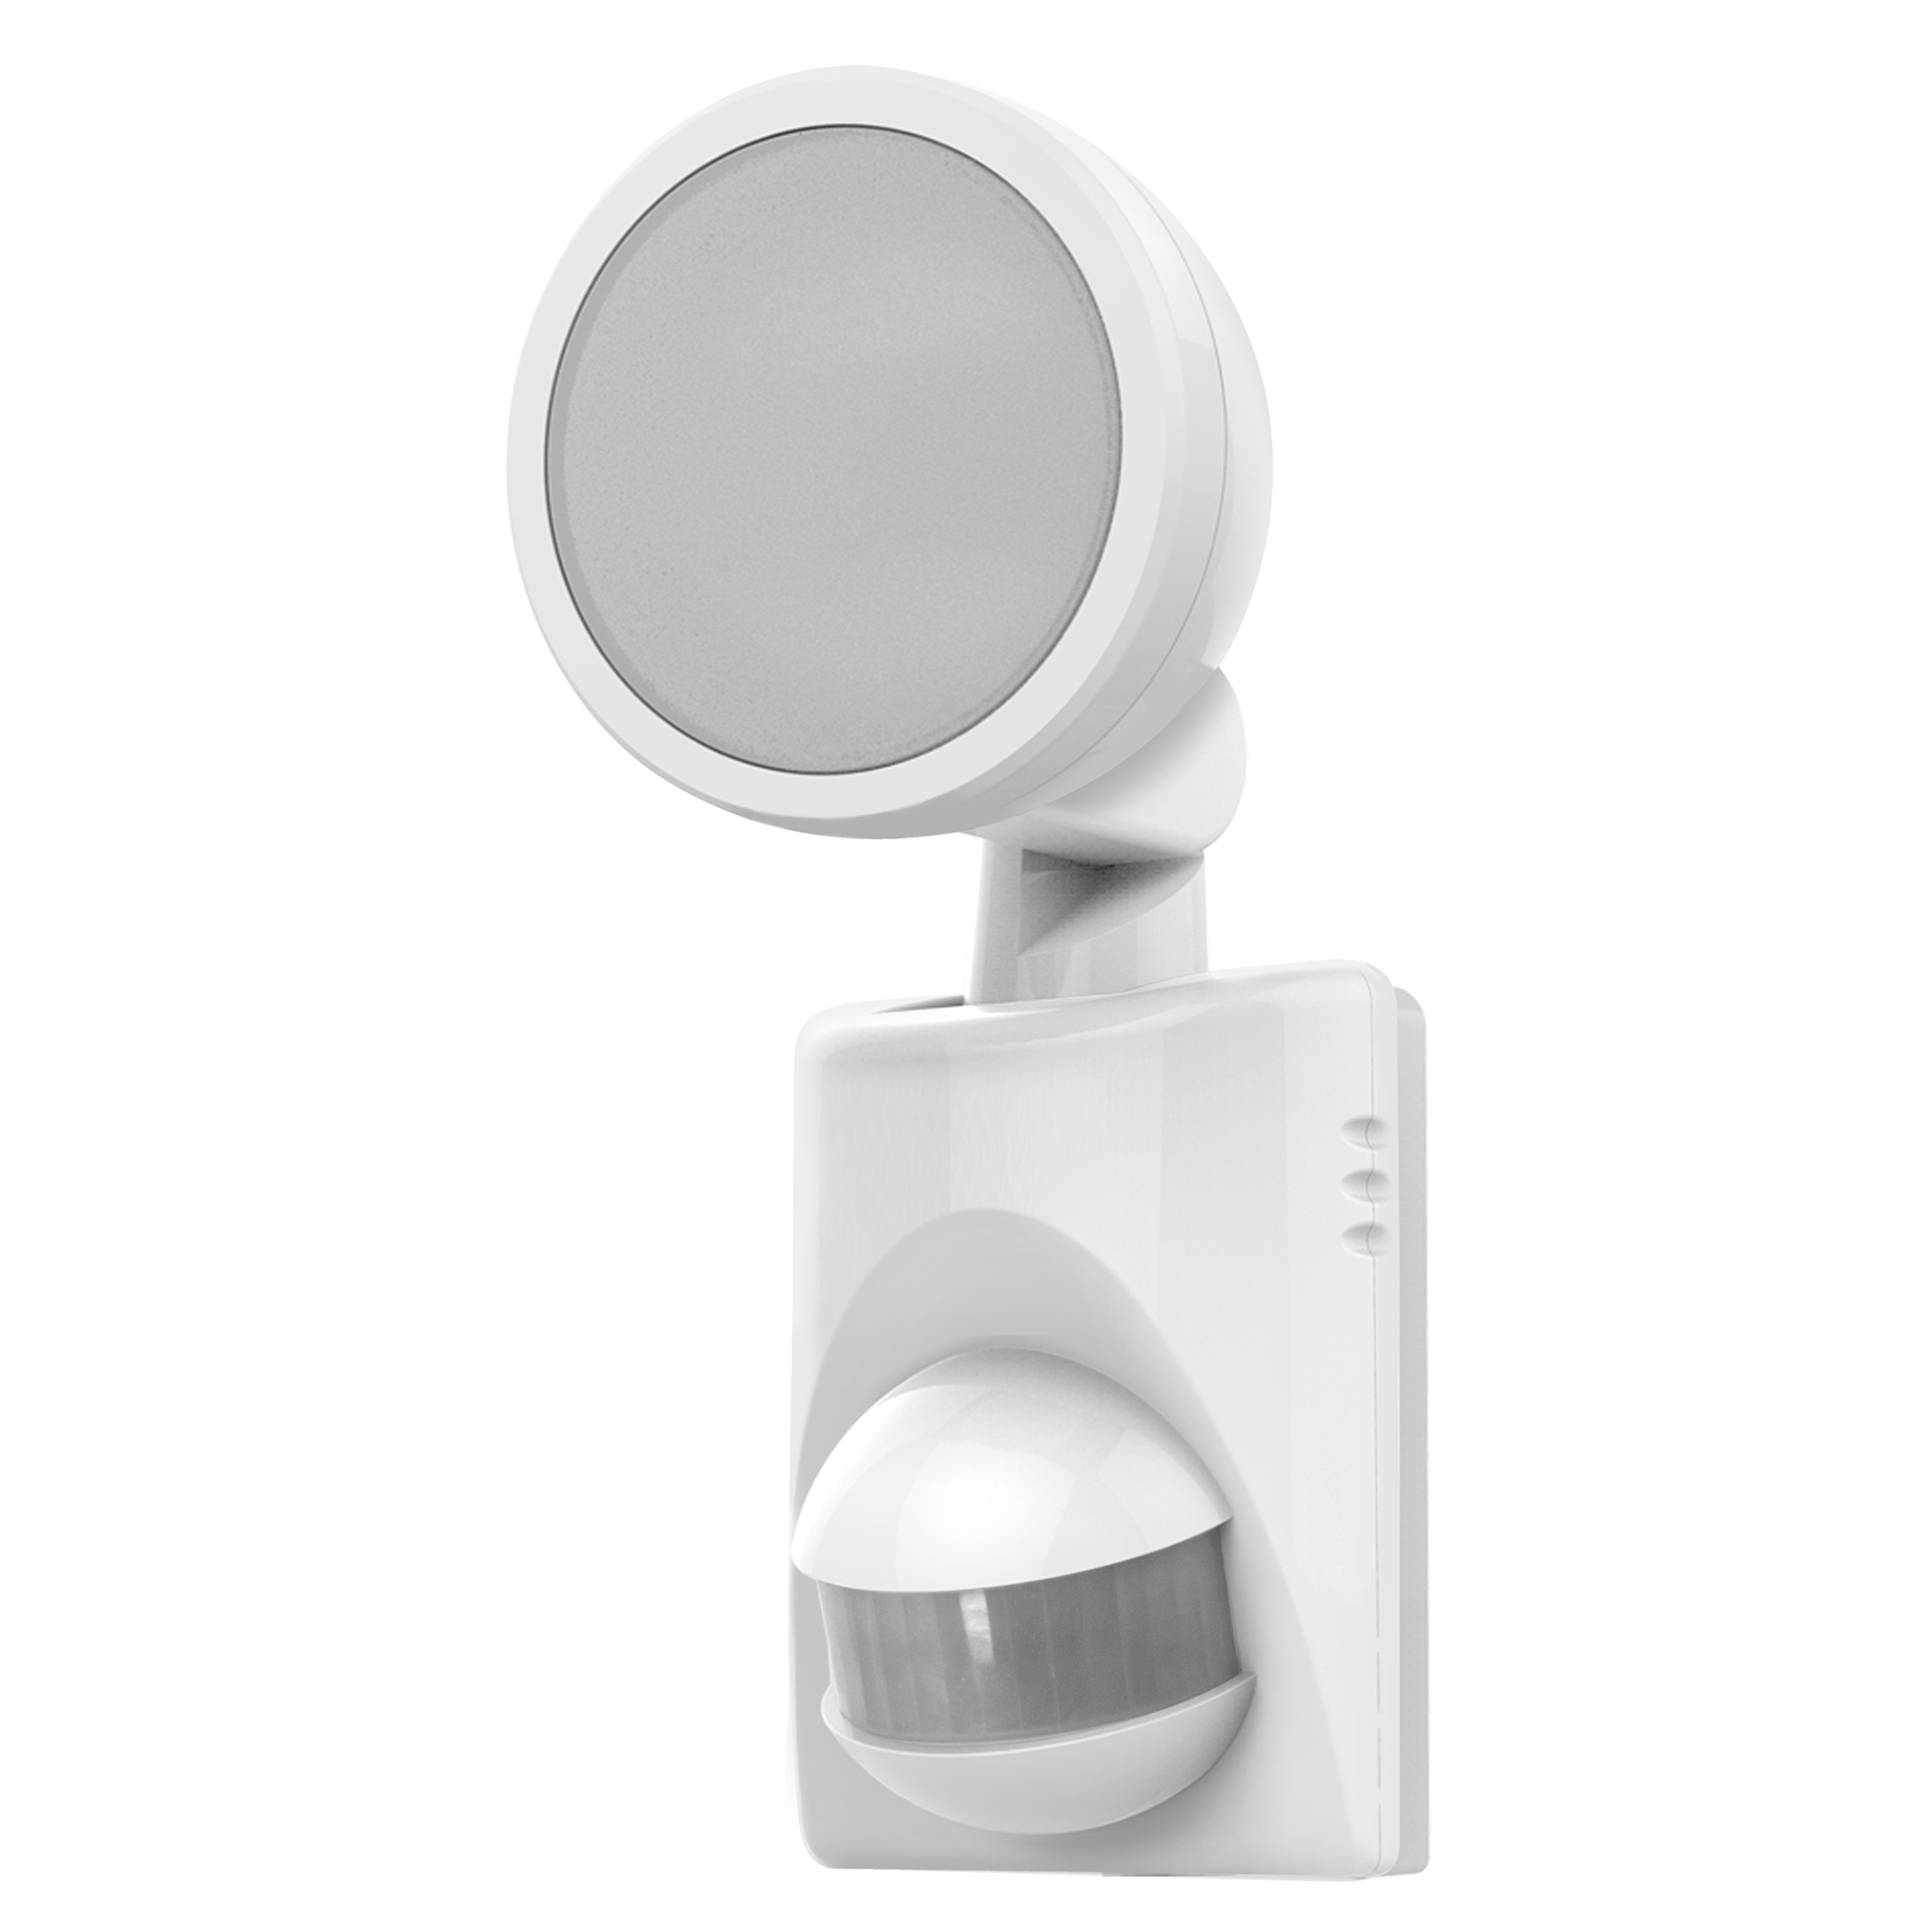 Admirable Heathco Hz 5990 Wh A White Battery Powered Led Motion Security Light Wiring 101 Archstreekradiomeanderfmnl